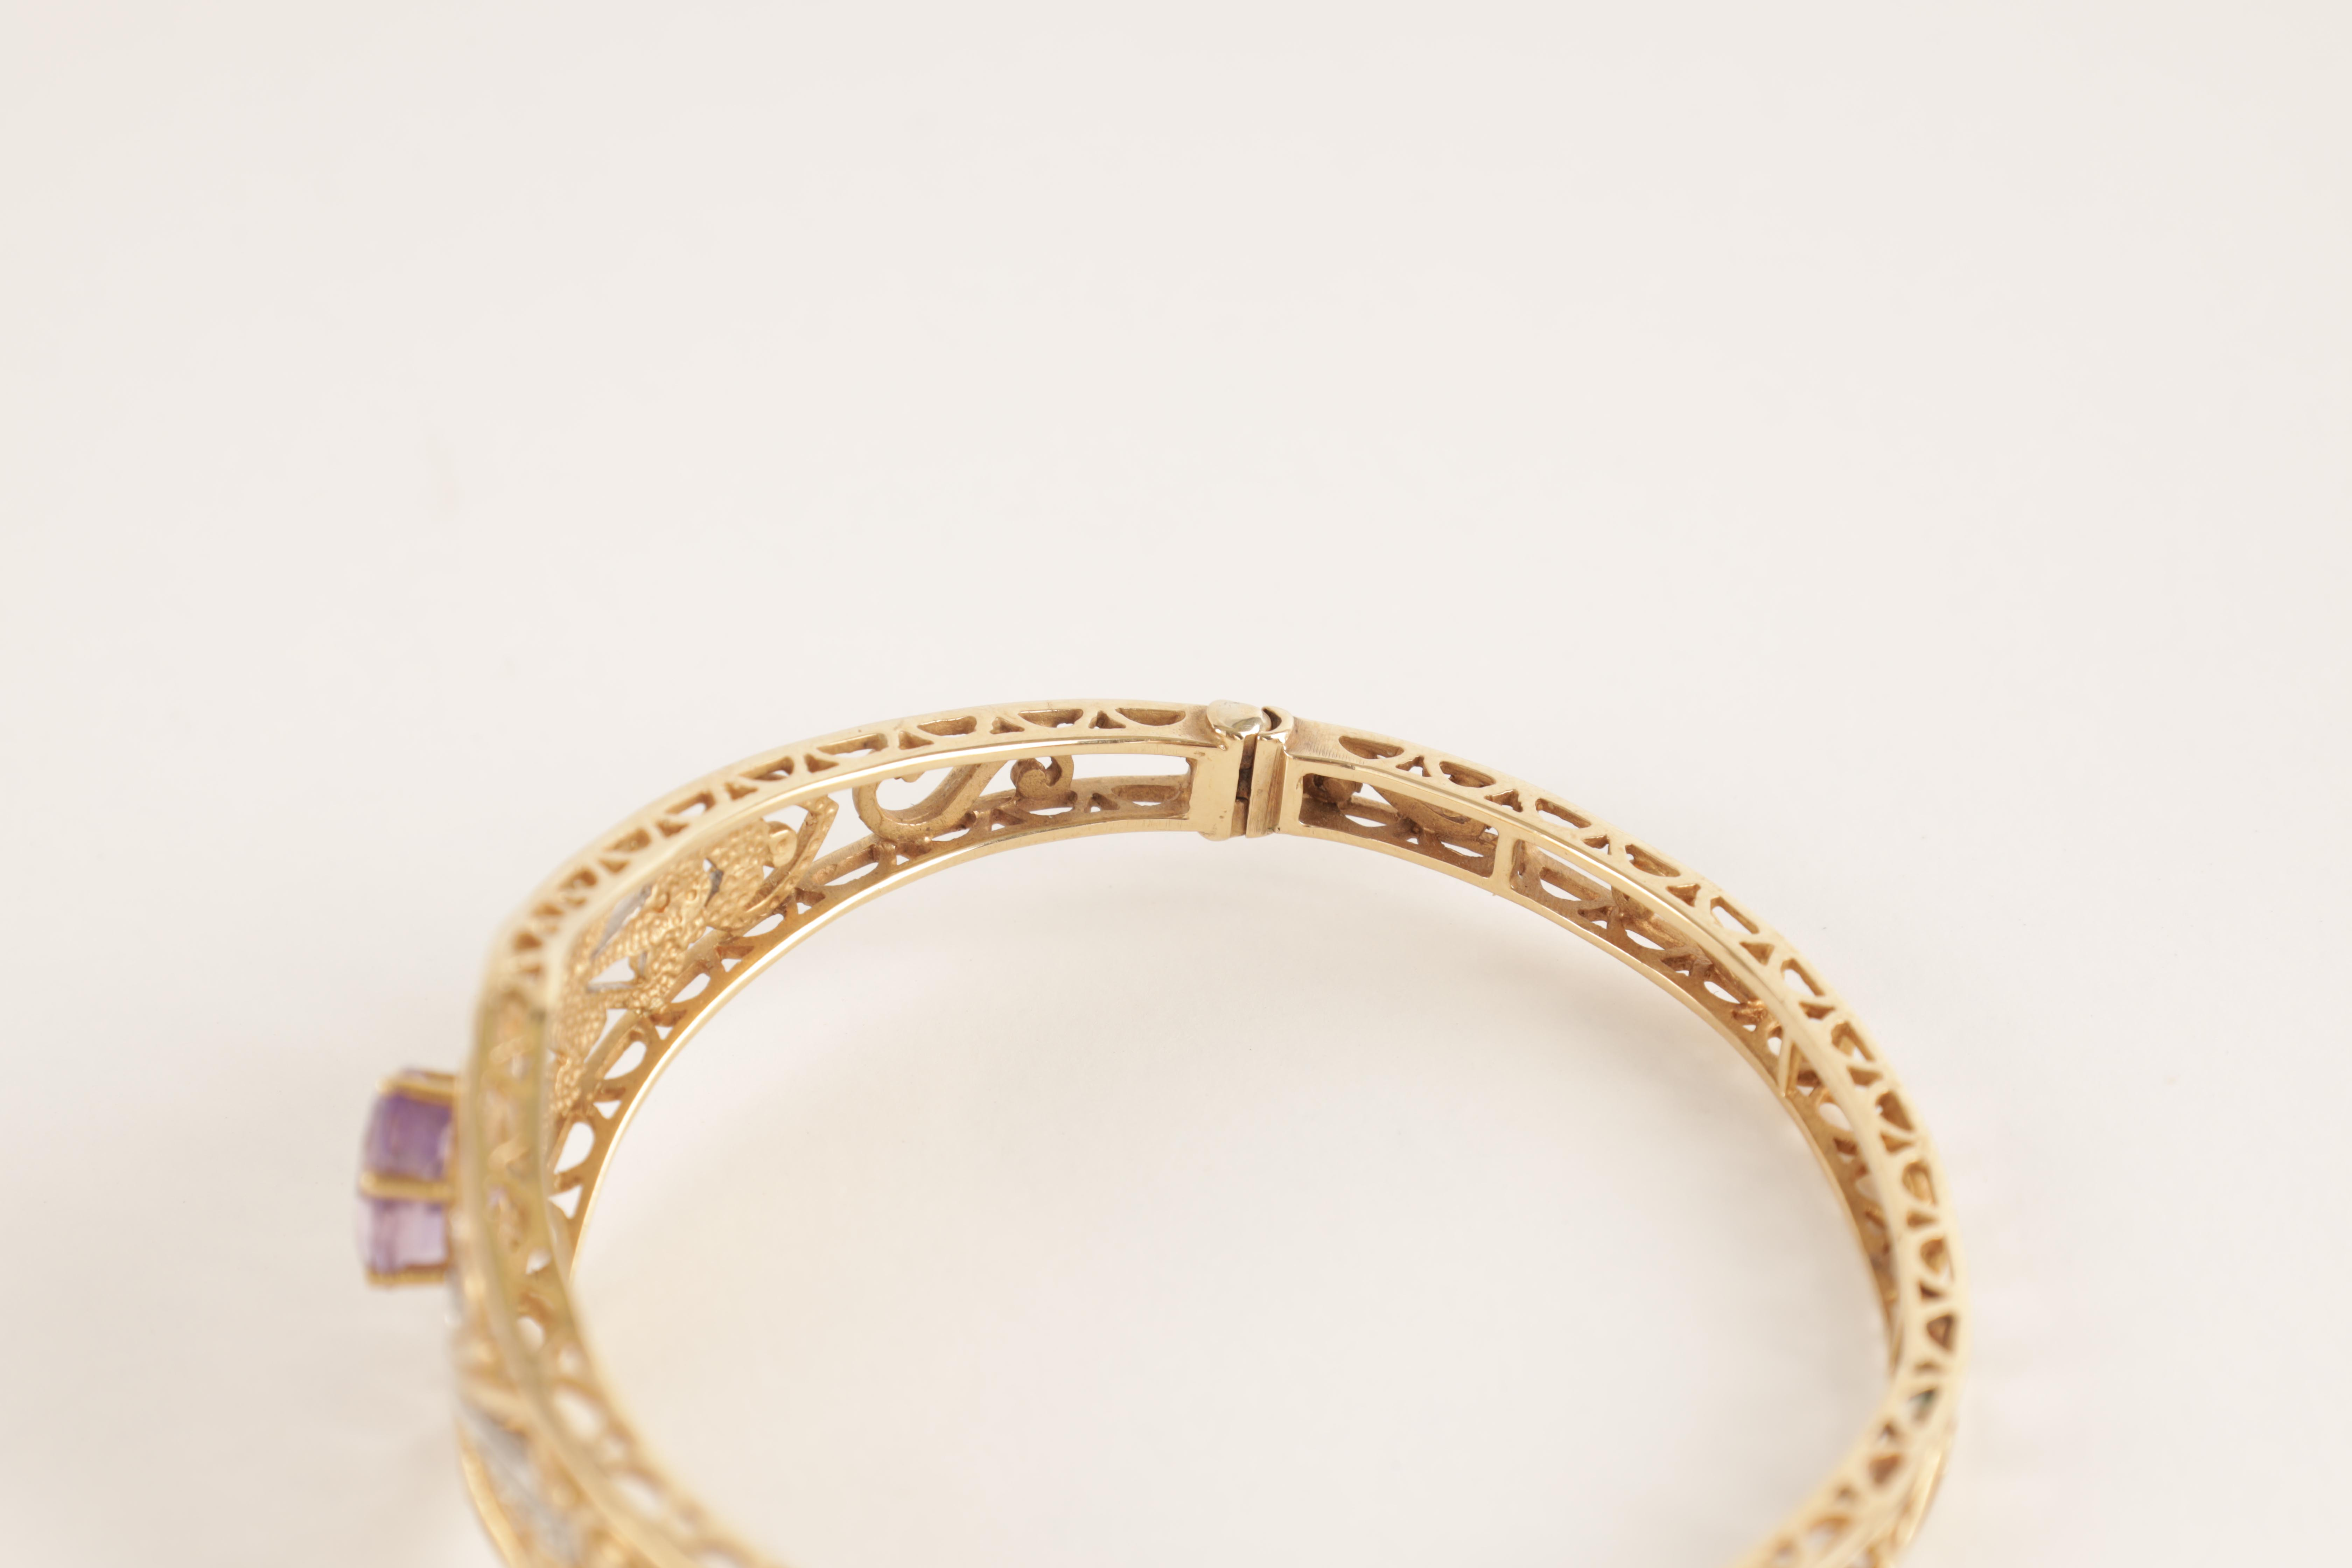 A LADIES 9CT GOLD DIAMOND AND AMETHYST BANGLE having filigree scrollwork decoration with diamonds - Image 3 of 4